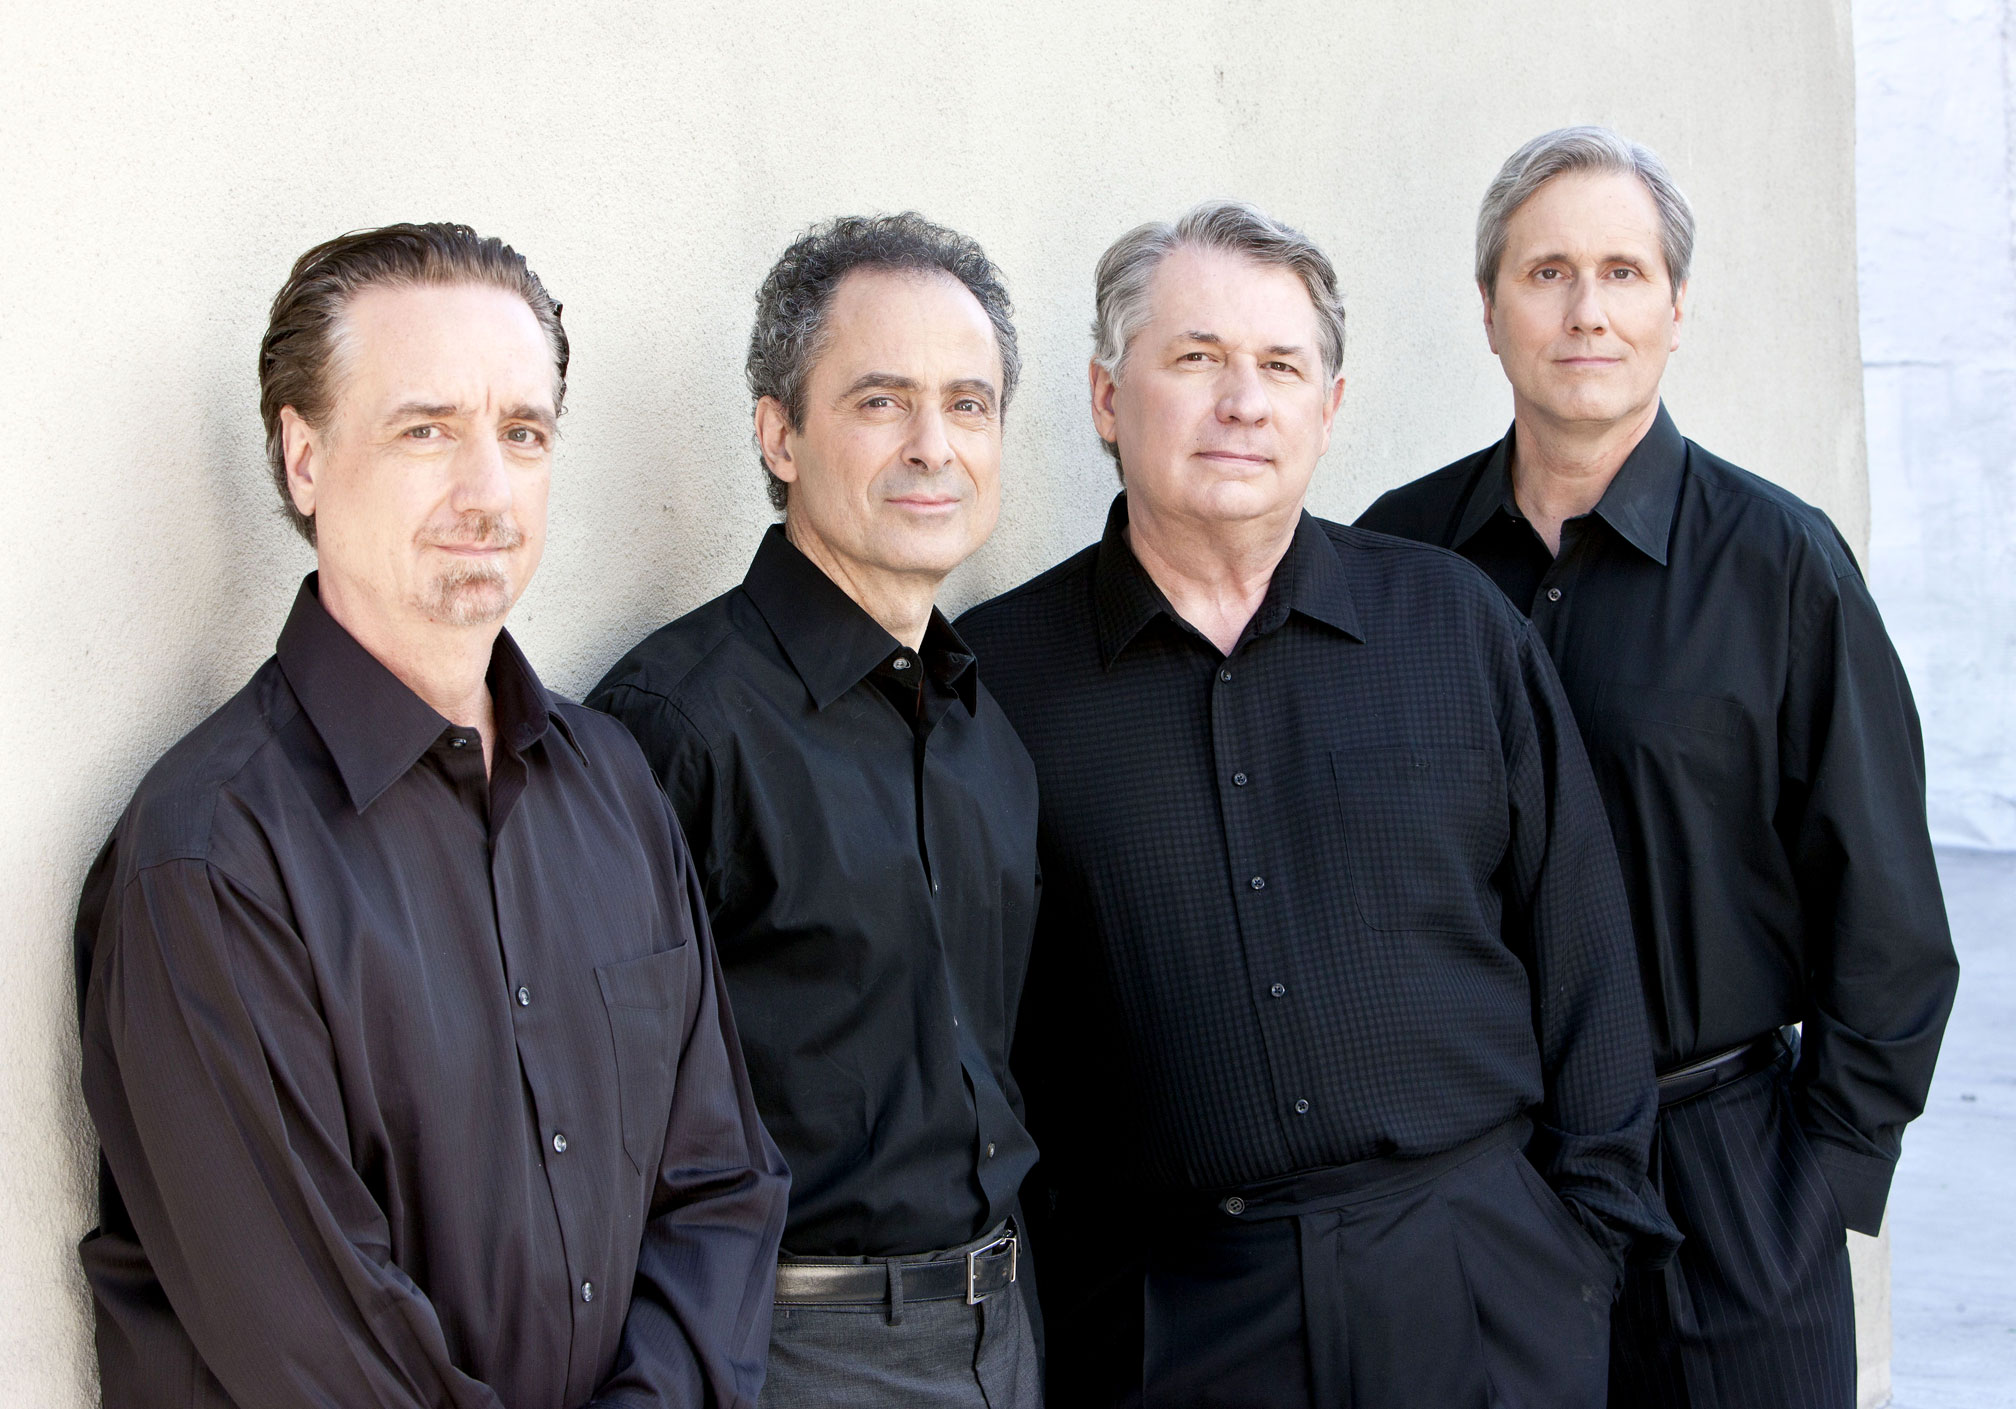 Emerson String Quartet brings music by Mozart, Haydn, Beethoven to